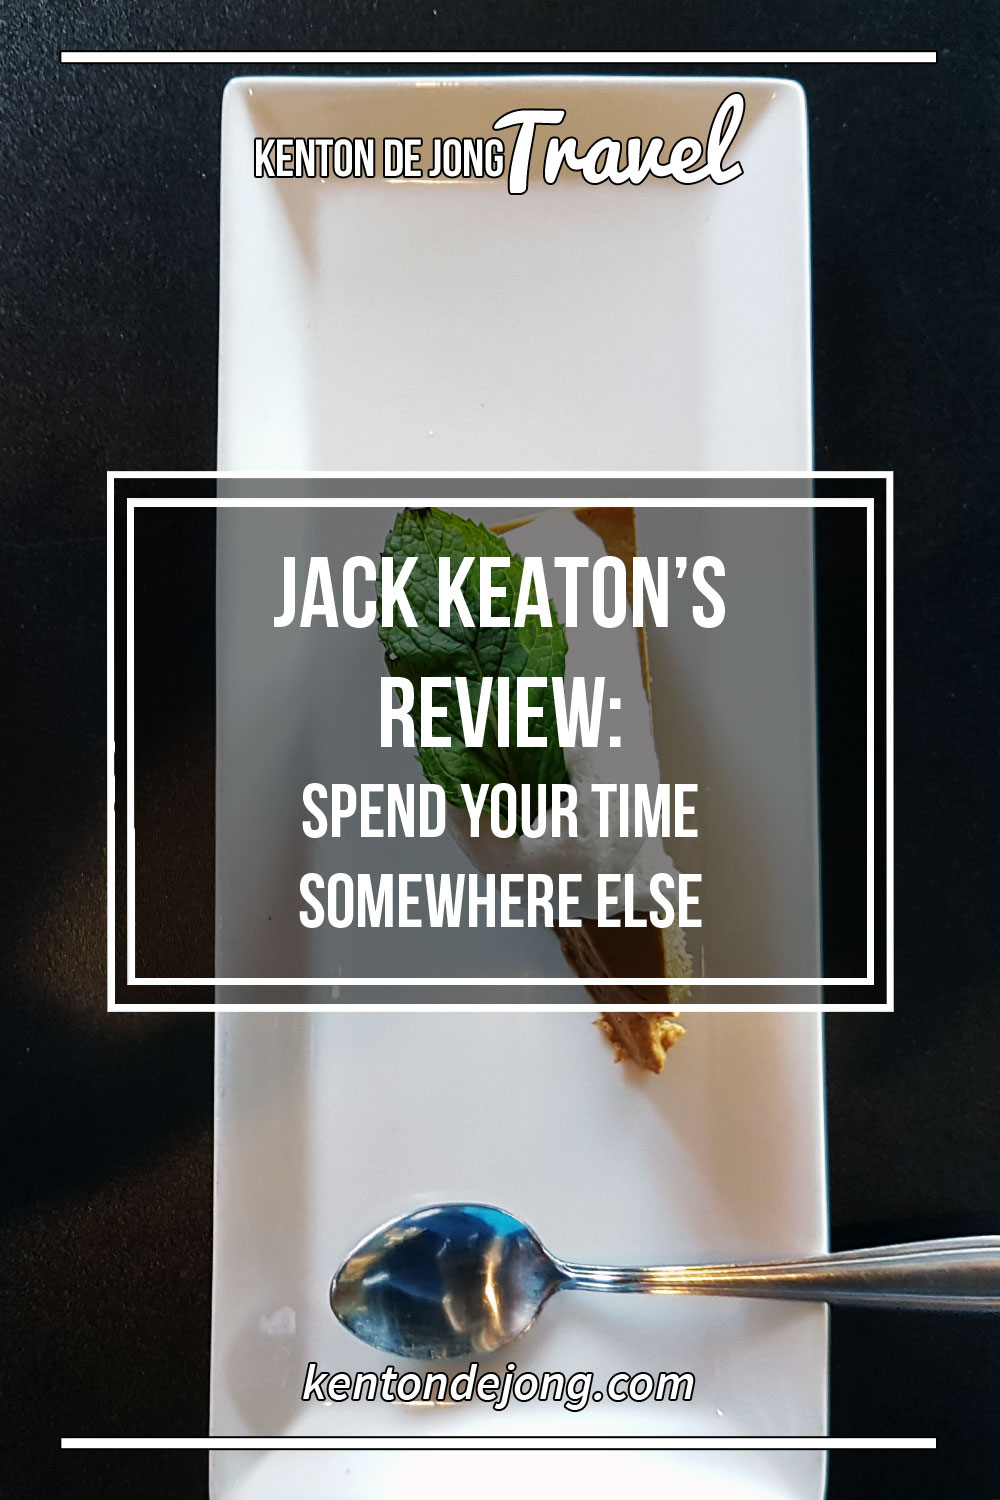 Jack Keaton's Review: Spend Your Time Somewhere Else